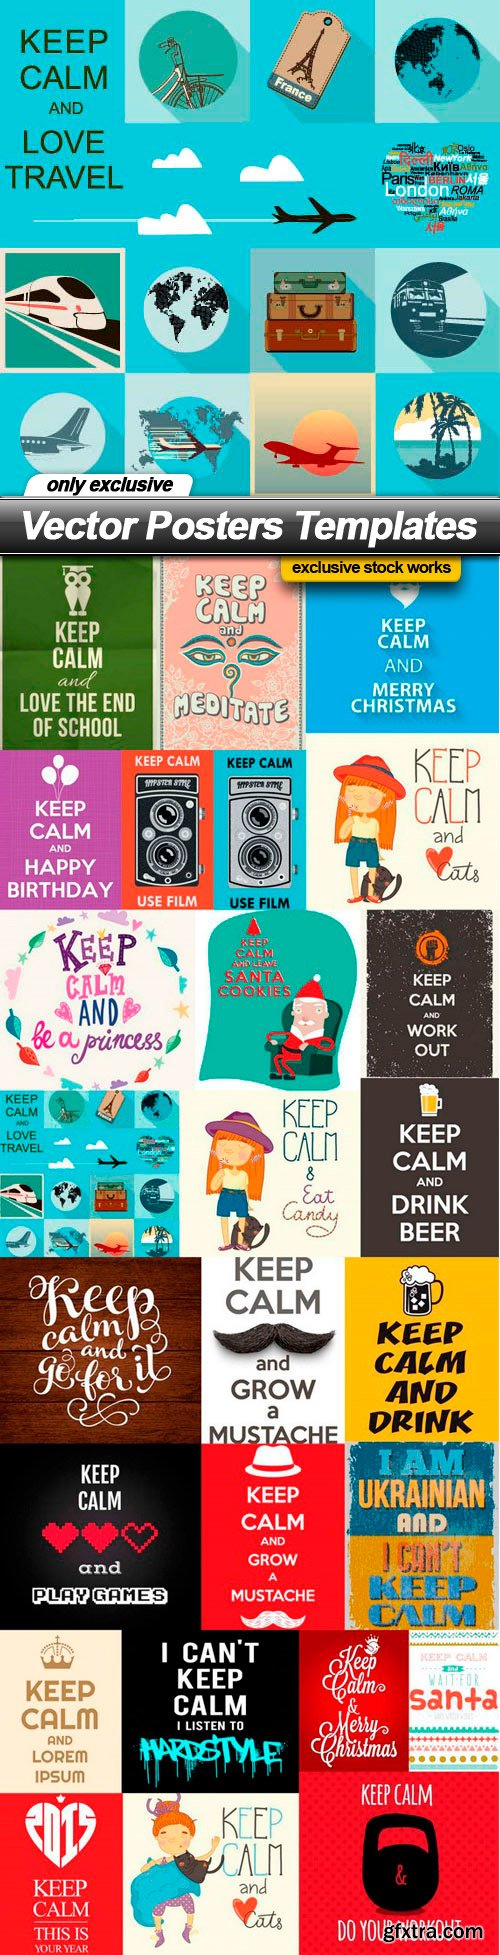 Vector Posters Templates - 25 EPS